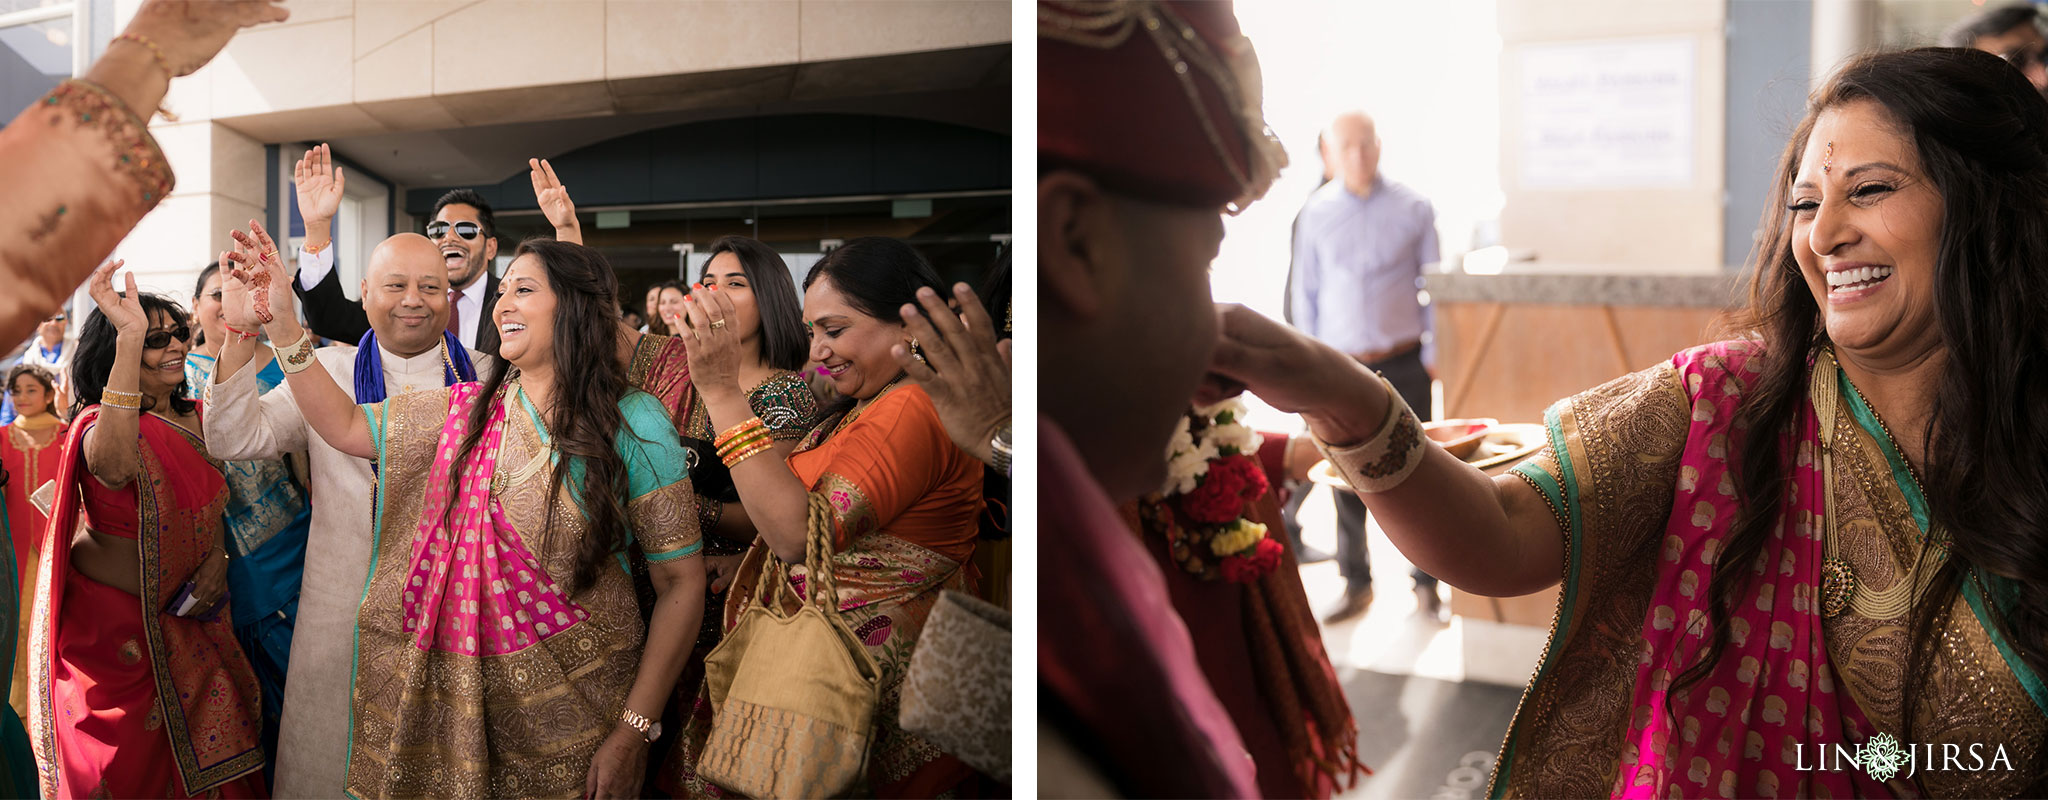 20 loews coronado bay resort indian baraat wedding photography